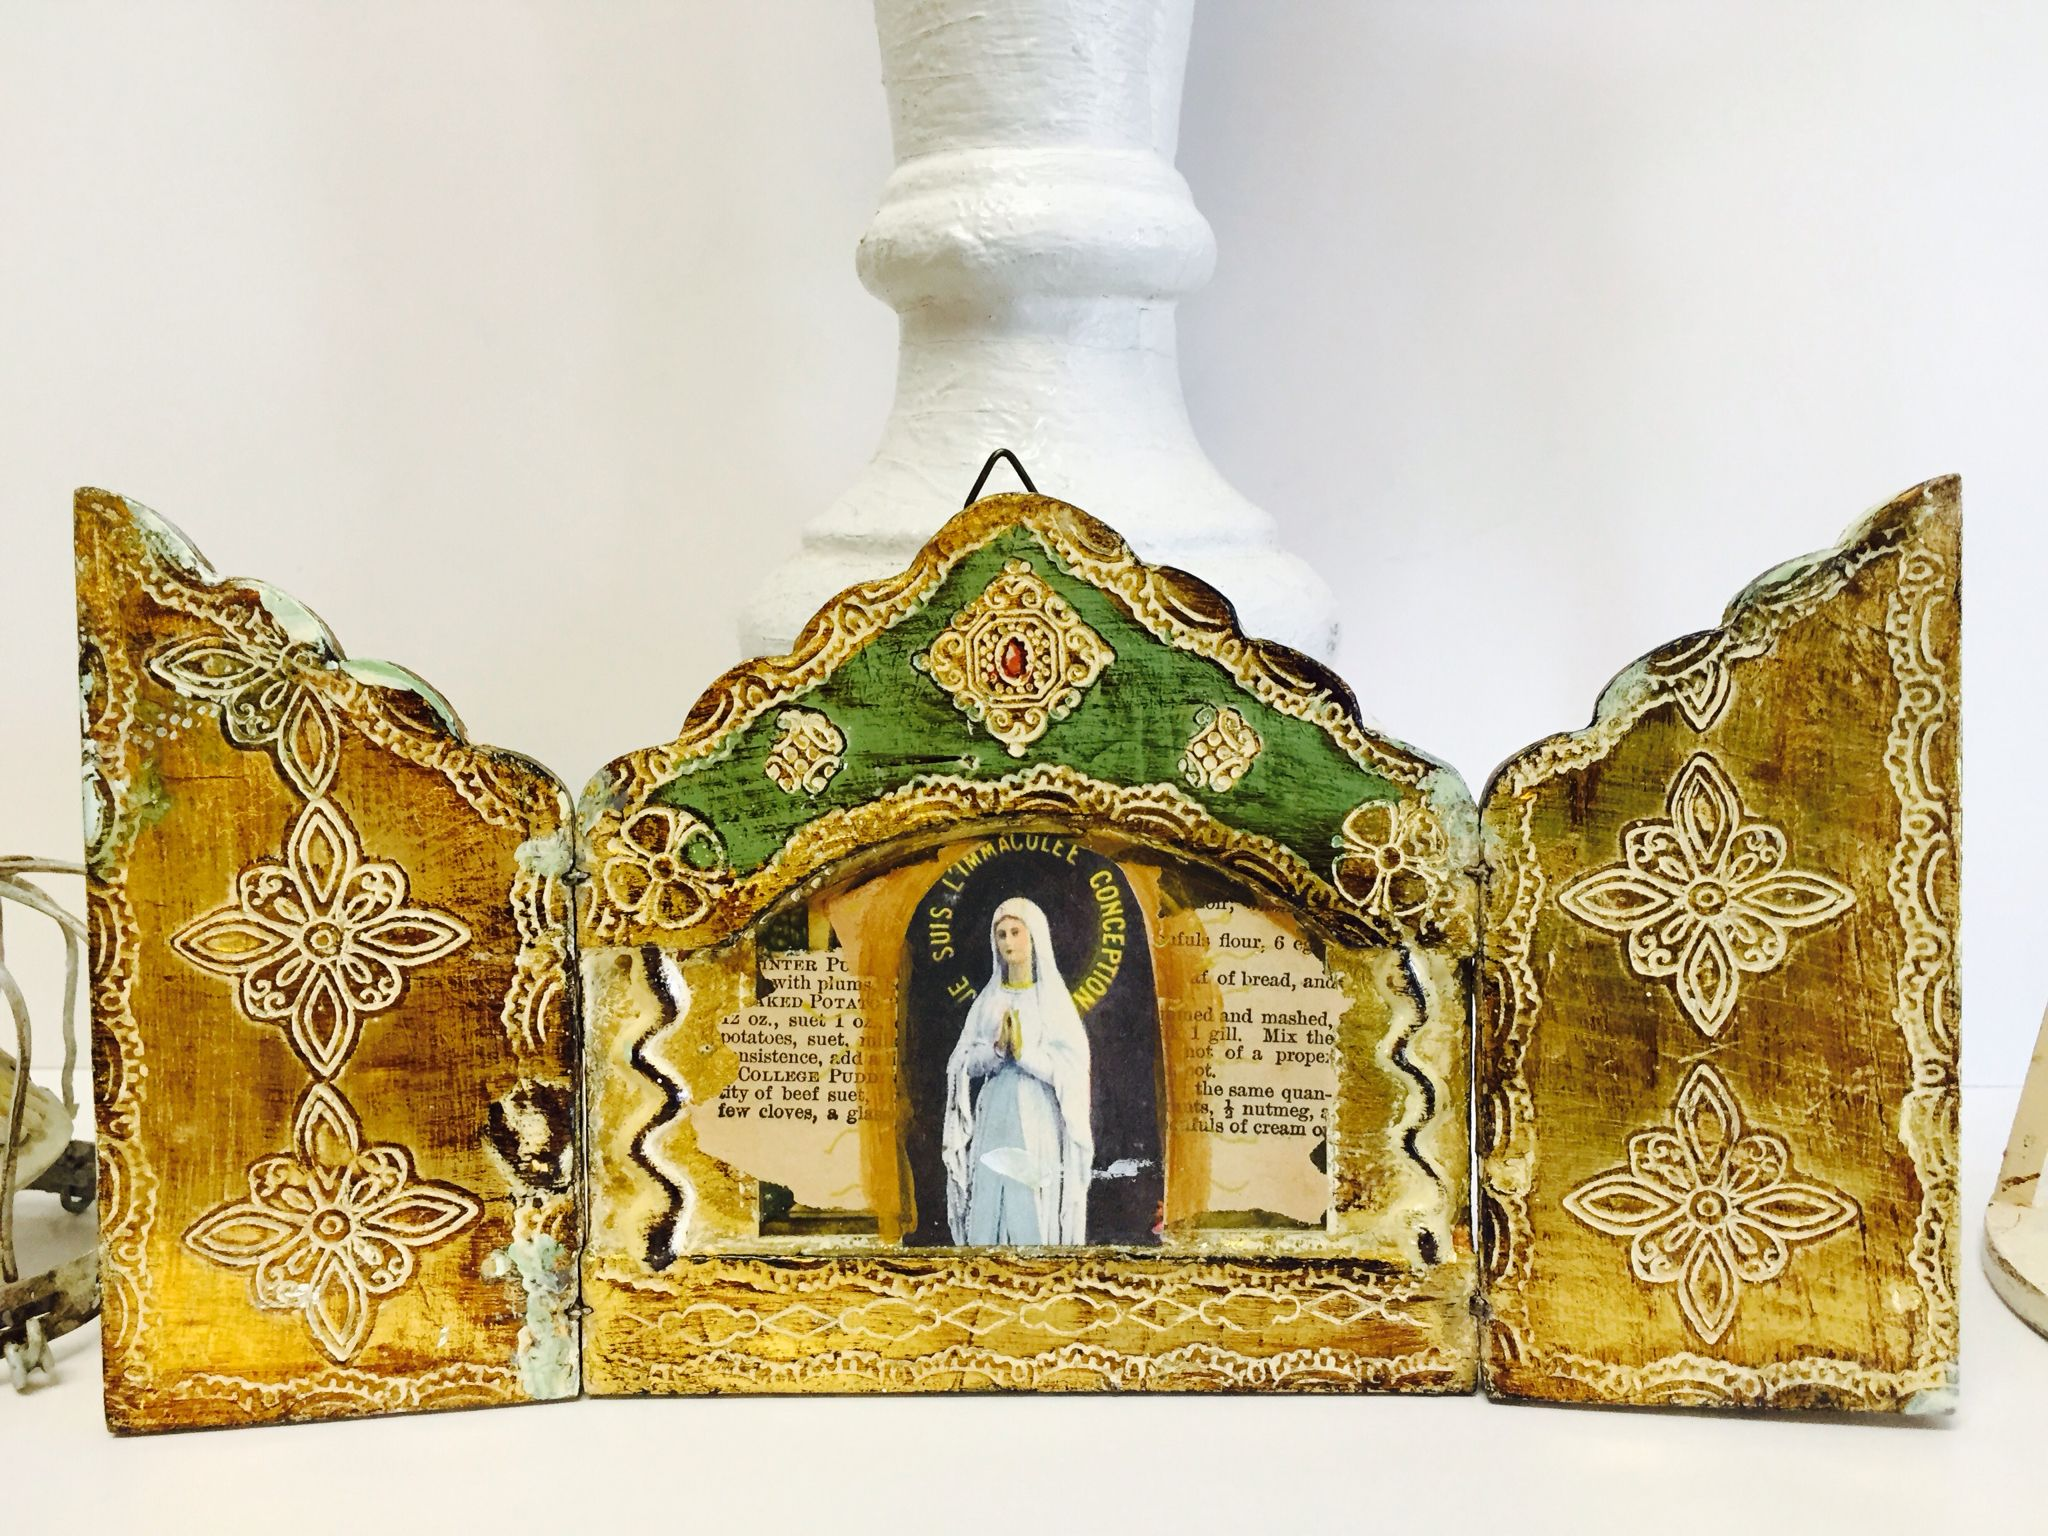 Virgin Mary Shrine/ Relics and Artifacts on the front